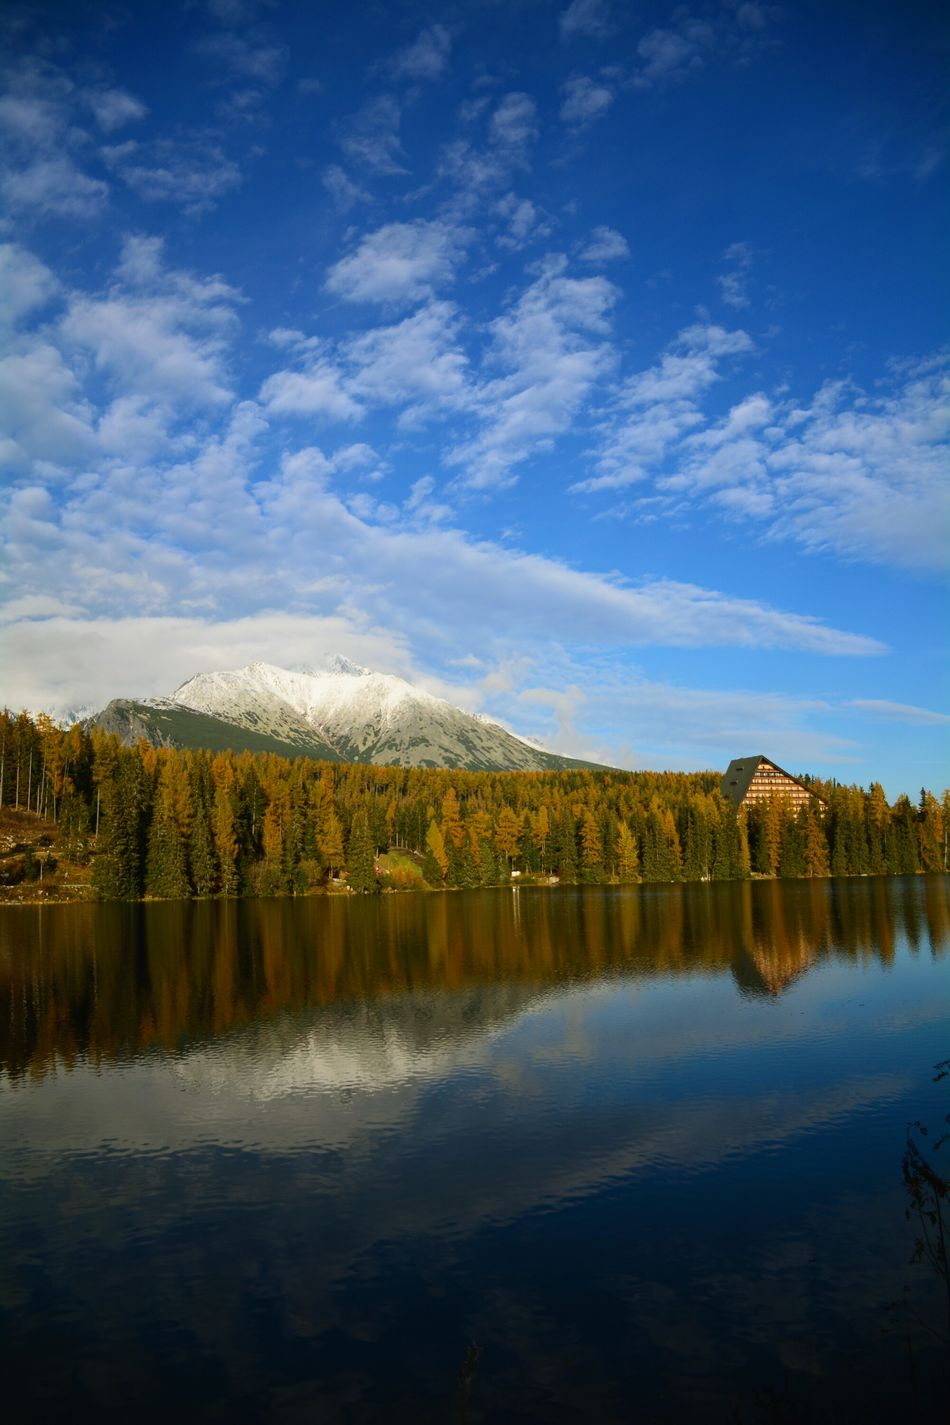 Water Reflection Lake Nature Wilderness Forest Landscape Outdoors Sky Mountain Slovakia High Tatras Strbske Pleso